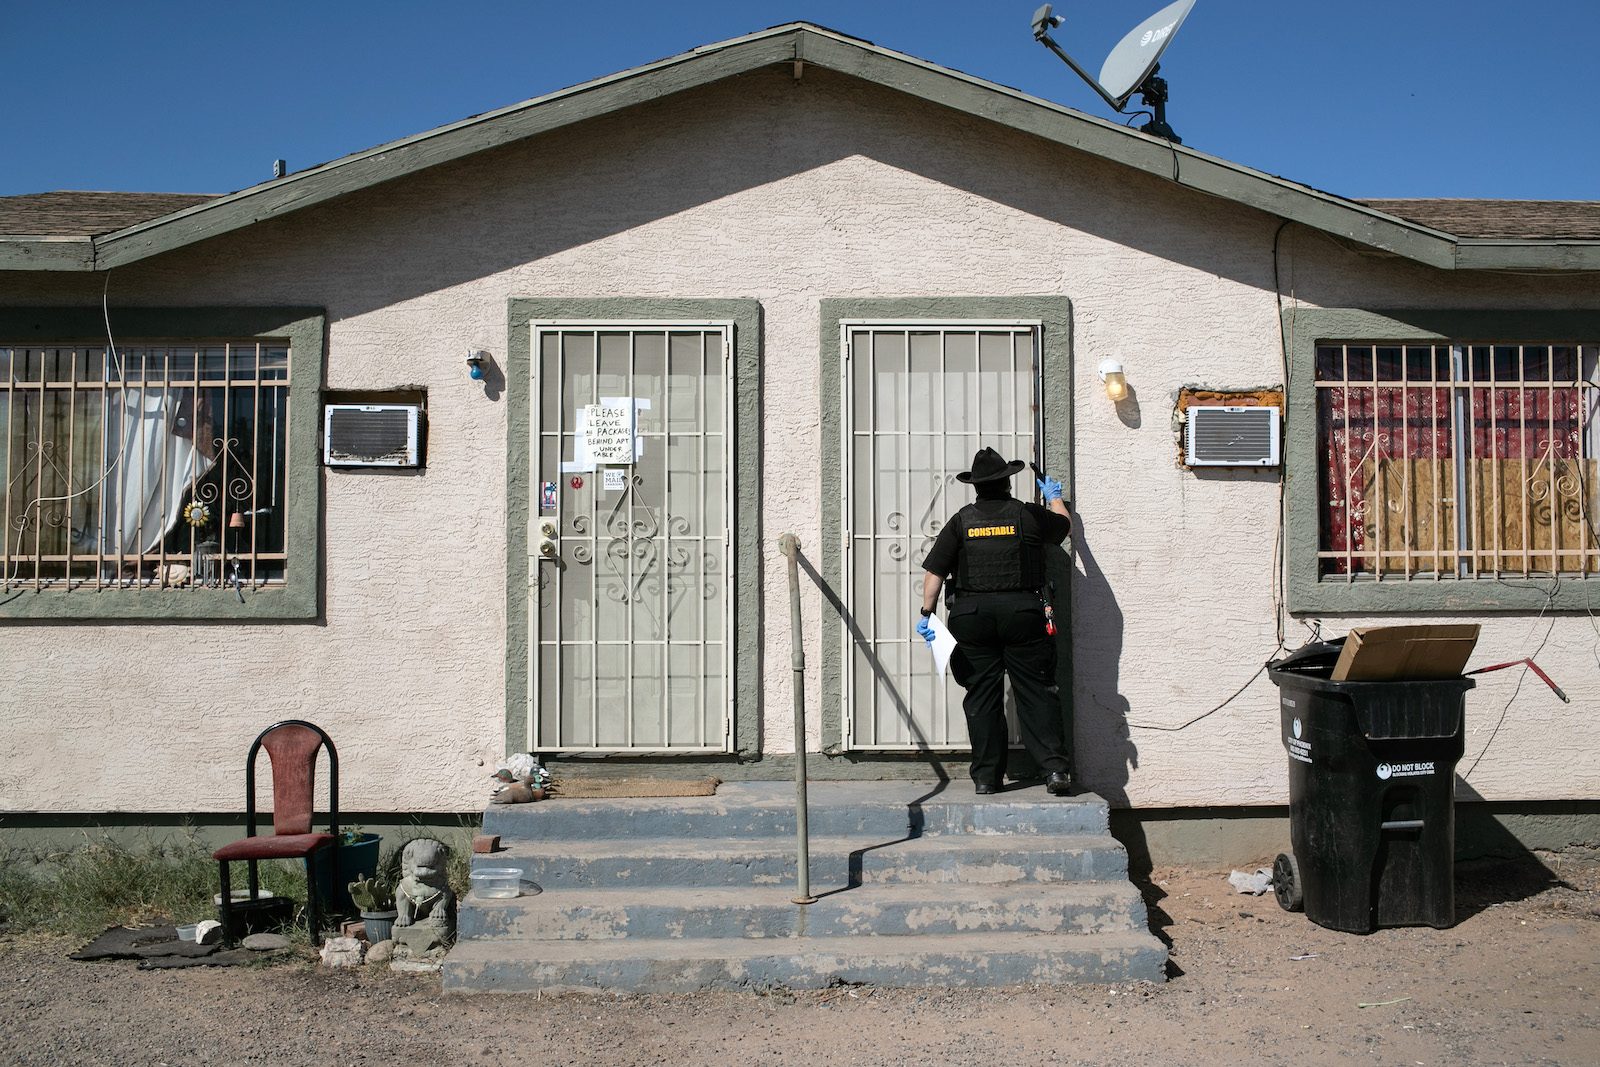 Maricopa County constable Darlene Martinez knocks on a door before posting an eviction order on October 1, 2020 in Phoenix, Arizona.